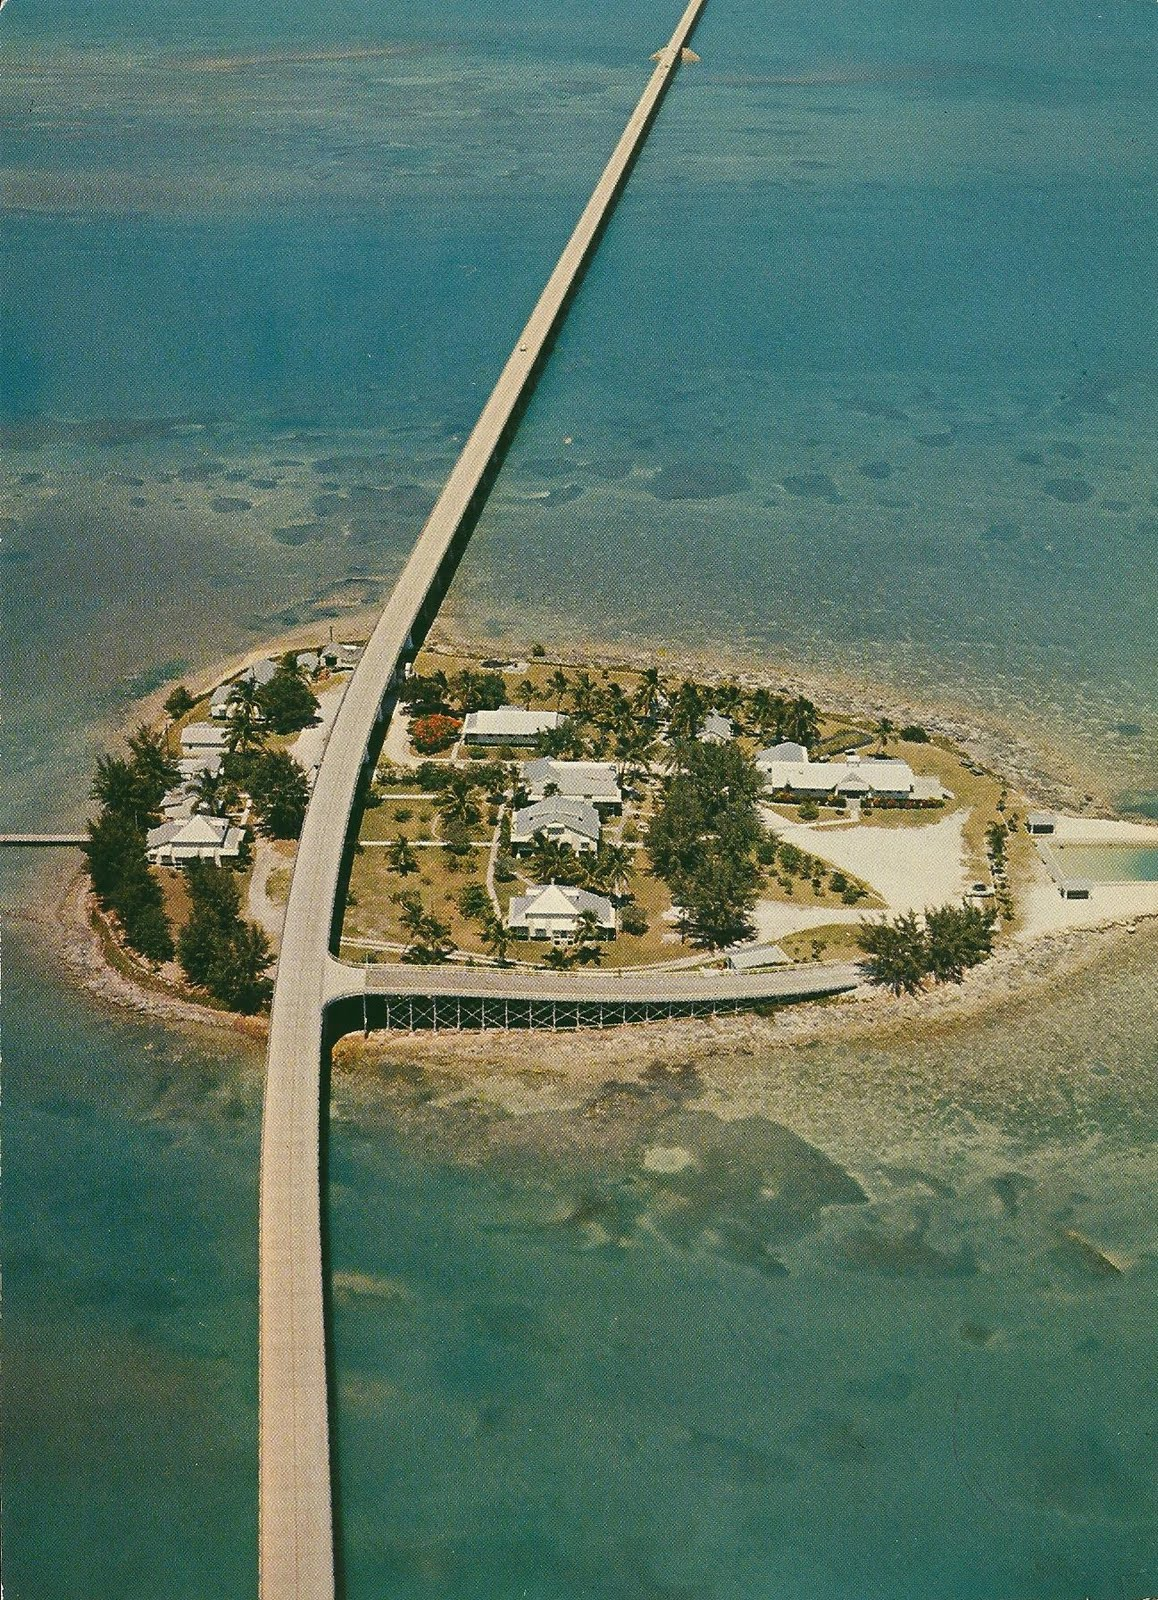 Key West Bridge Length Pictures to Pin on Pinterest - ThePinsta